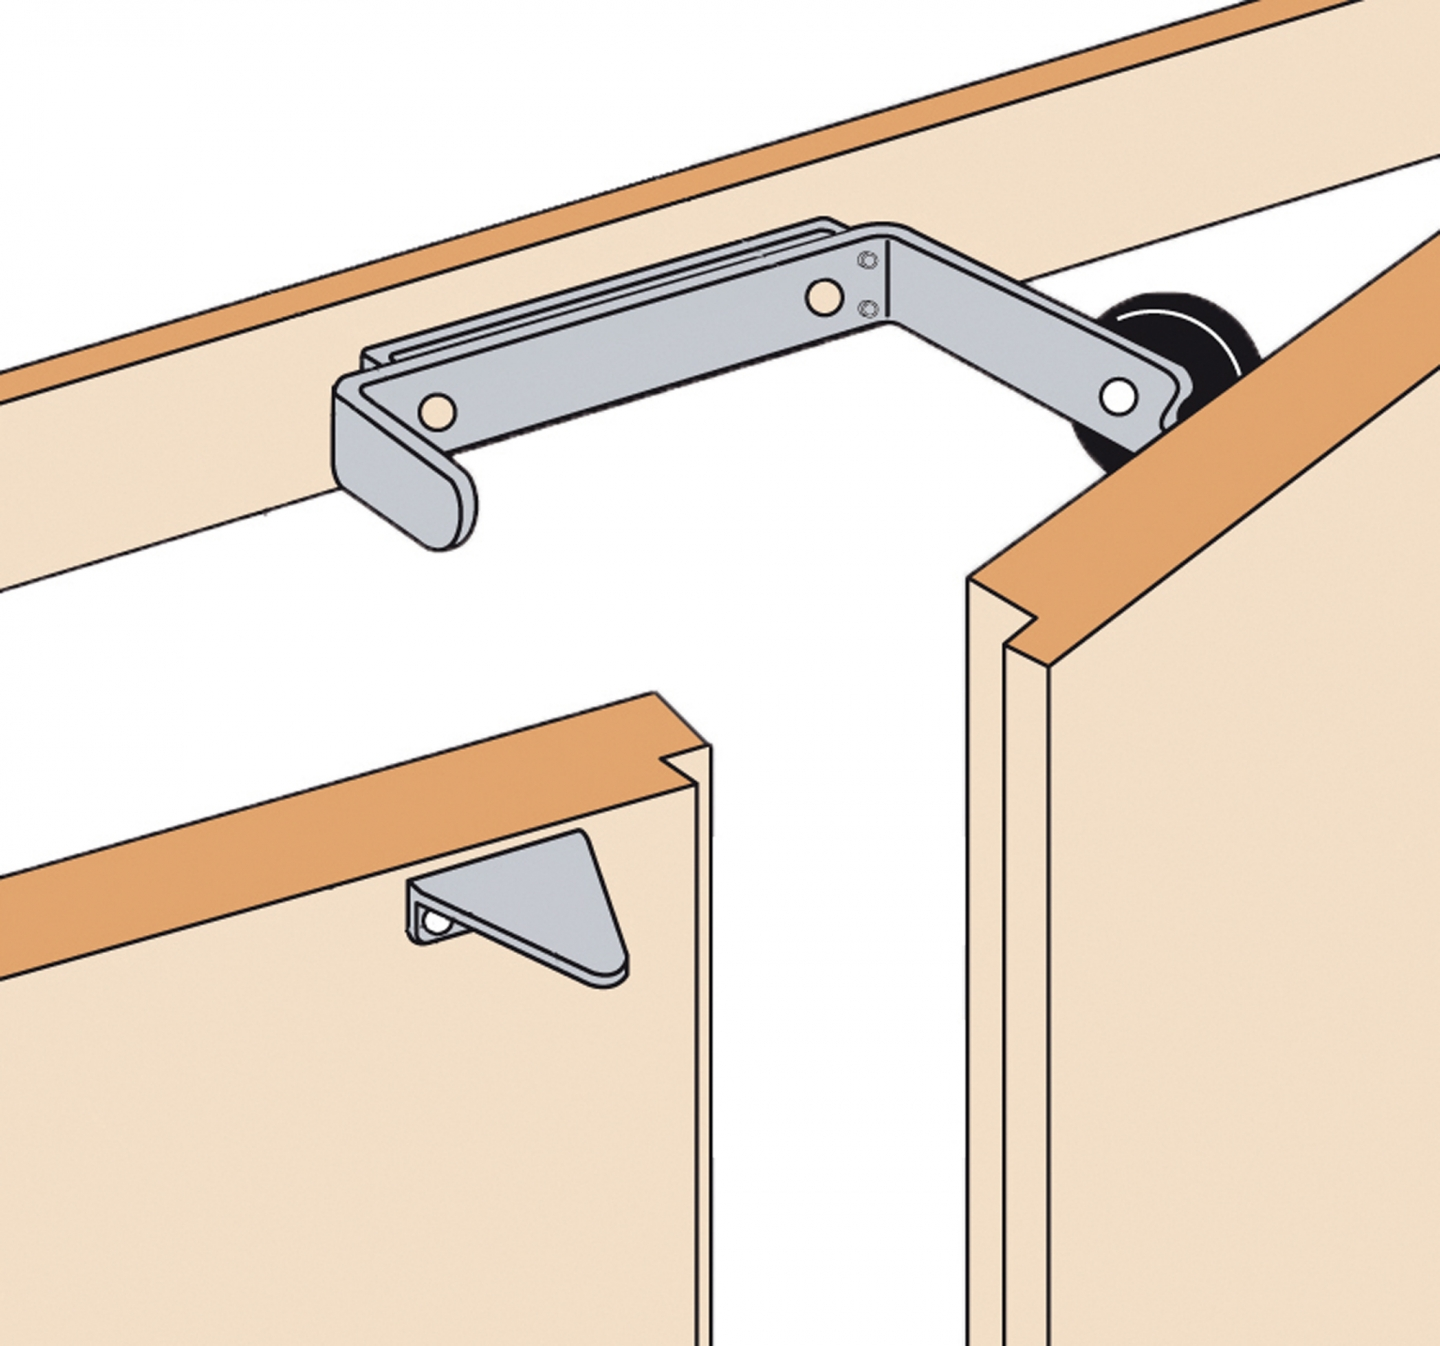 Mandatory equipment for double-leaf doors. Suitable for heavy doors up to 100kg. Weight  560 g. Dimensions  L.150 x H.34 x D30 mm.  sc 1 st  Fire safety products solutions and training - CORDIA & Order selector for double-wing door